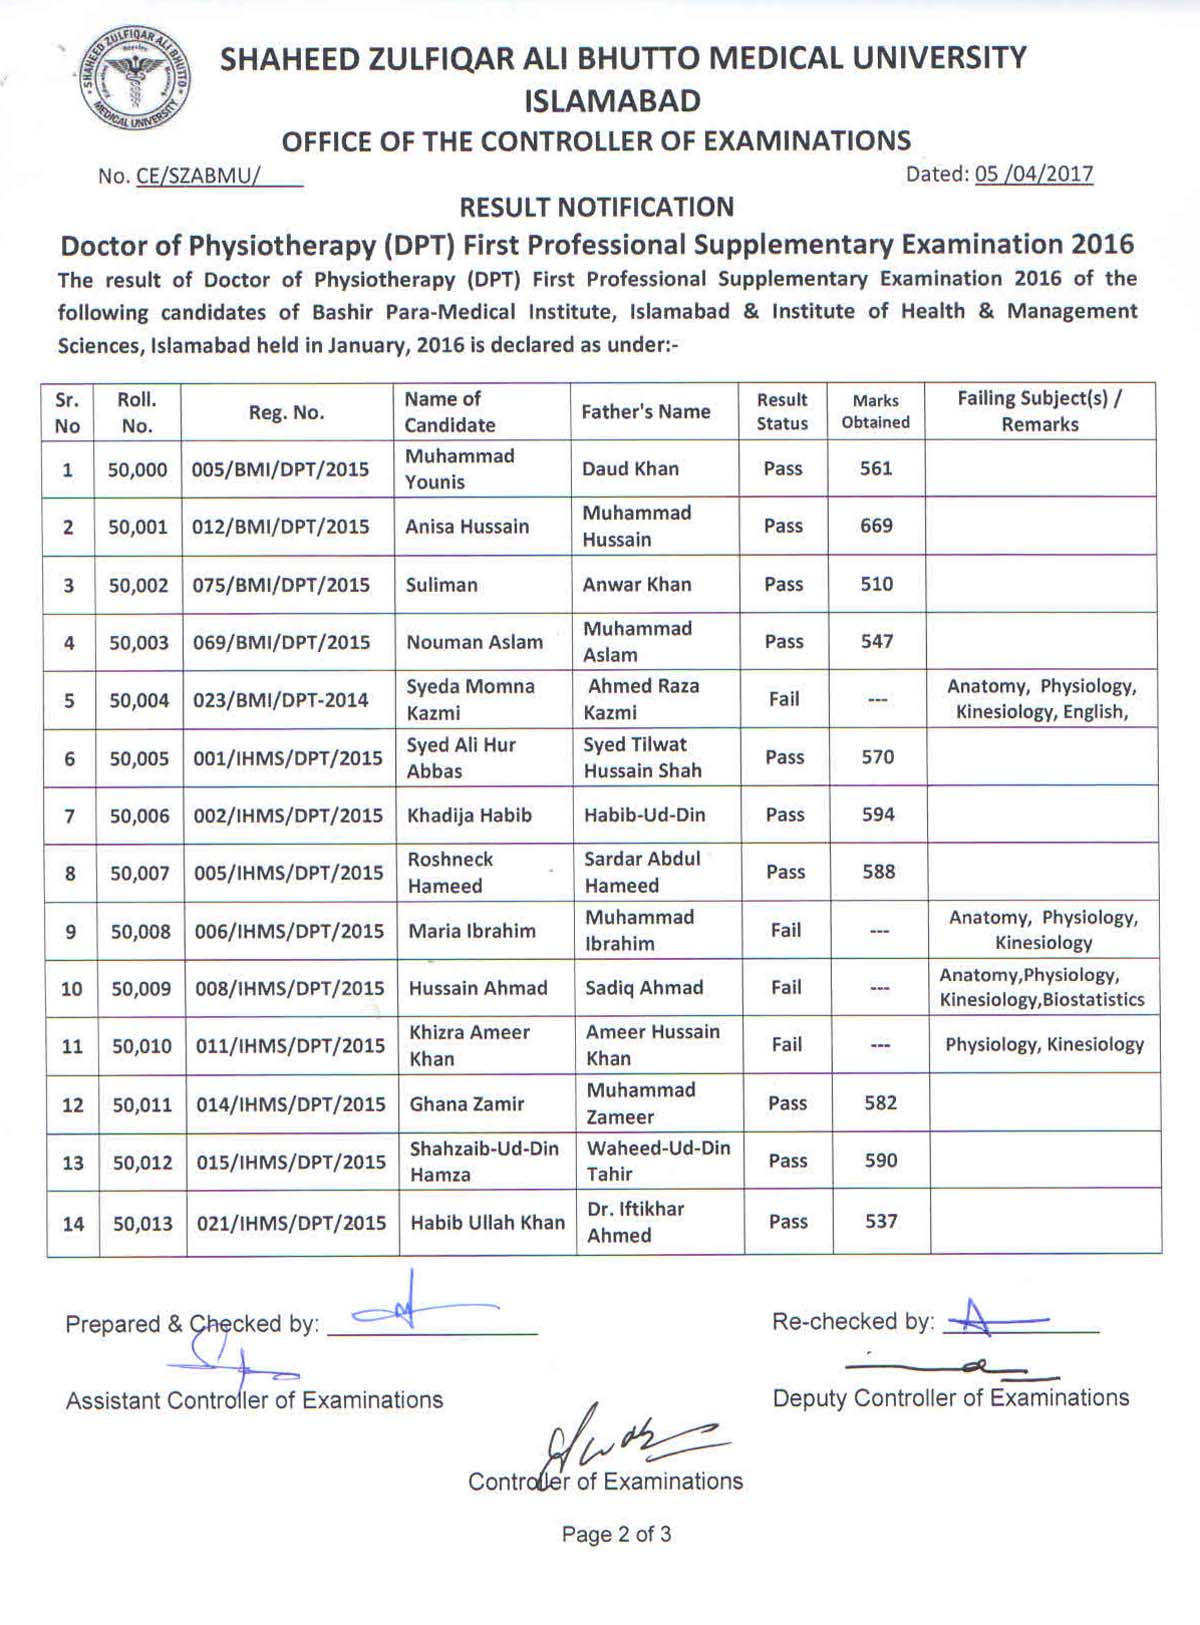 Result Notification - DPT First Professional Supplementary Examination 2016